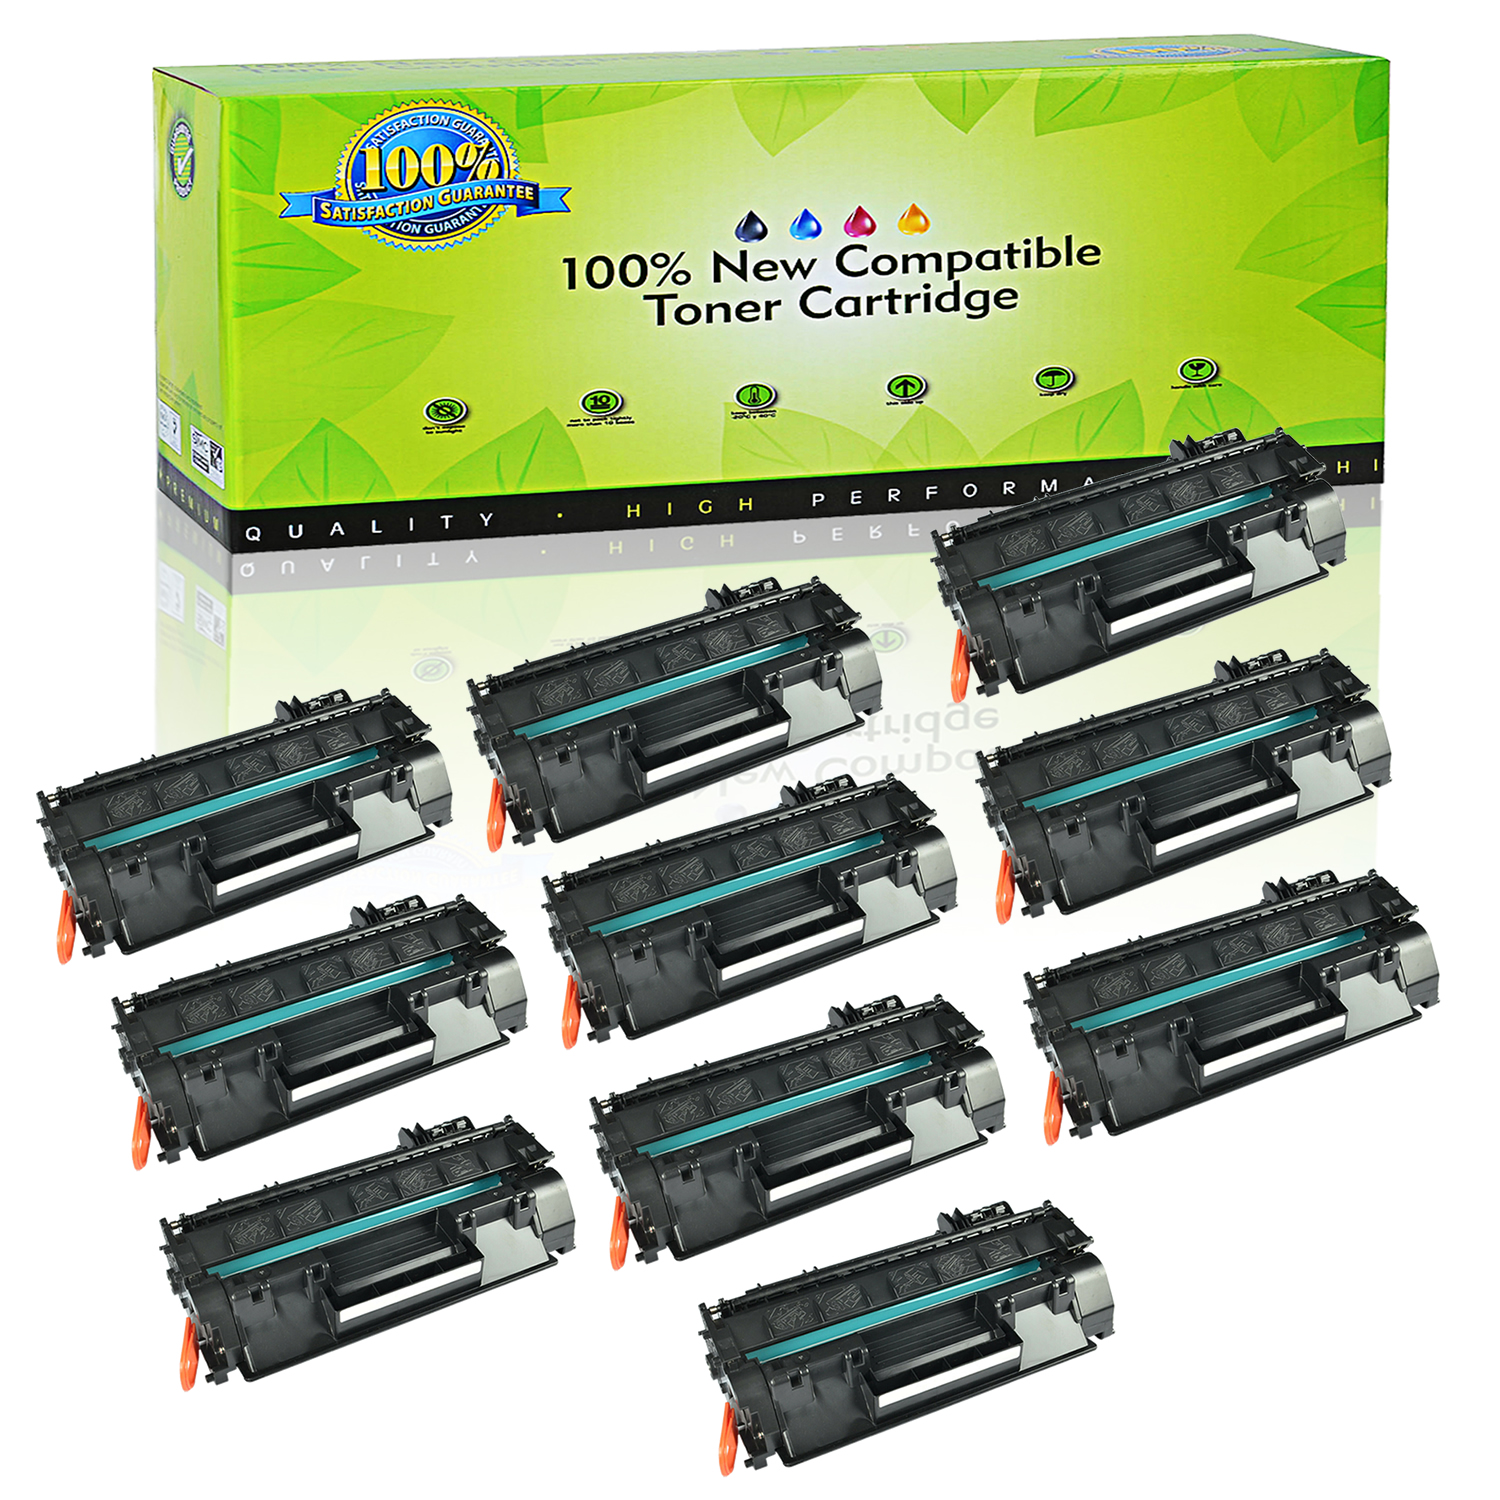 10 Pack High Yield CF280X 80X Toner For HP LaserJet Pro 400 M401dw M401dne M401n